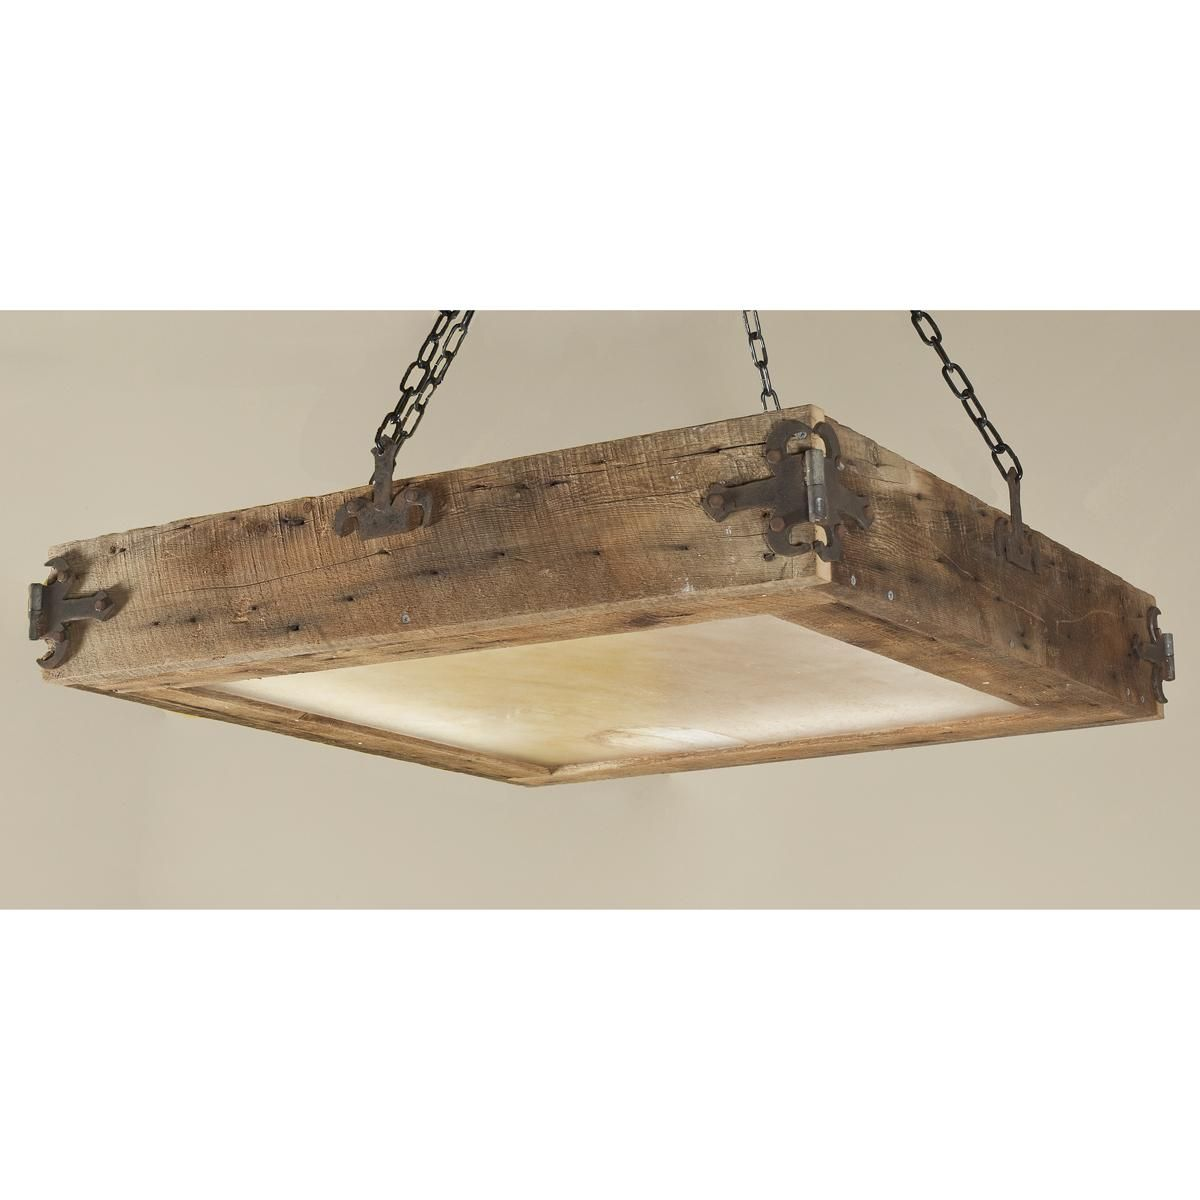 Reclaimed Wood Ceiling Light  I hate hate hate platform kitchen     Reclaimed Wood Ceiling Light  I hate hate hate platform kitchen ceiling  lights  but i love love love this  pathetically low ceilings in my domicile  mean no